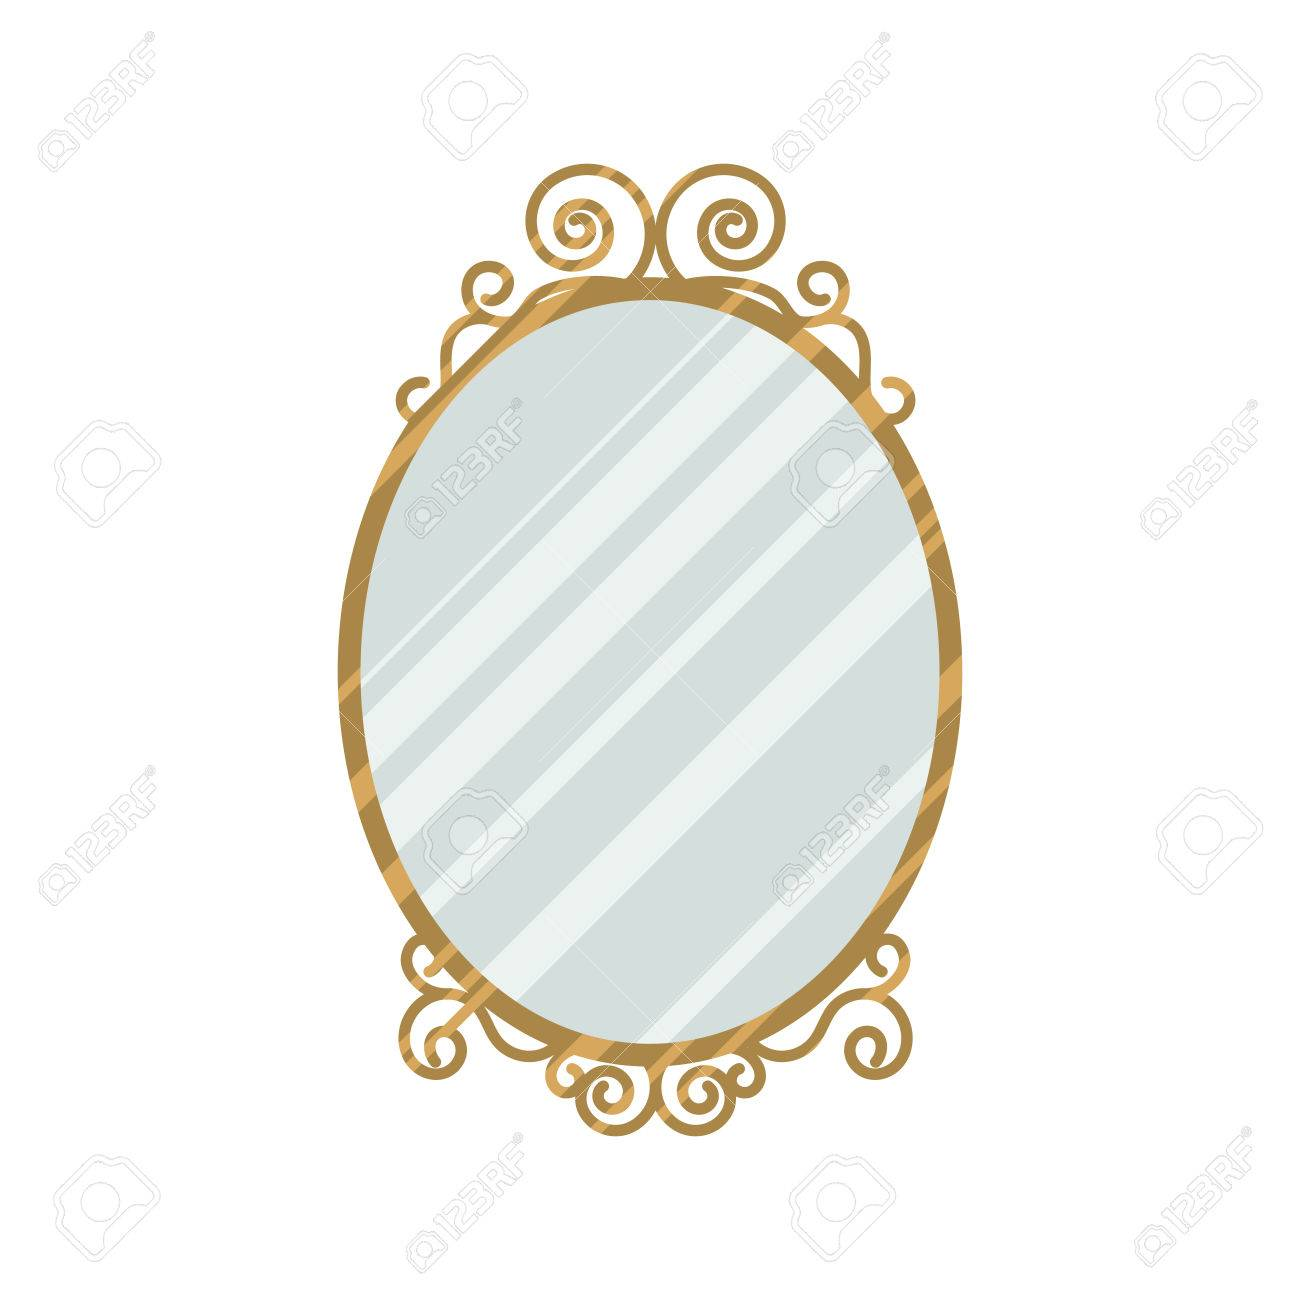 Vector   Vintage Style Feminine Design Mirror Vector Illustration. Home  Interior Oval Mirror With Curl Frame Gold Details.